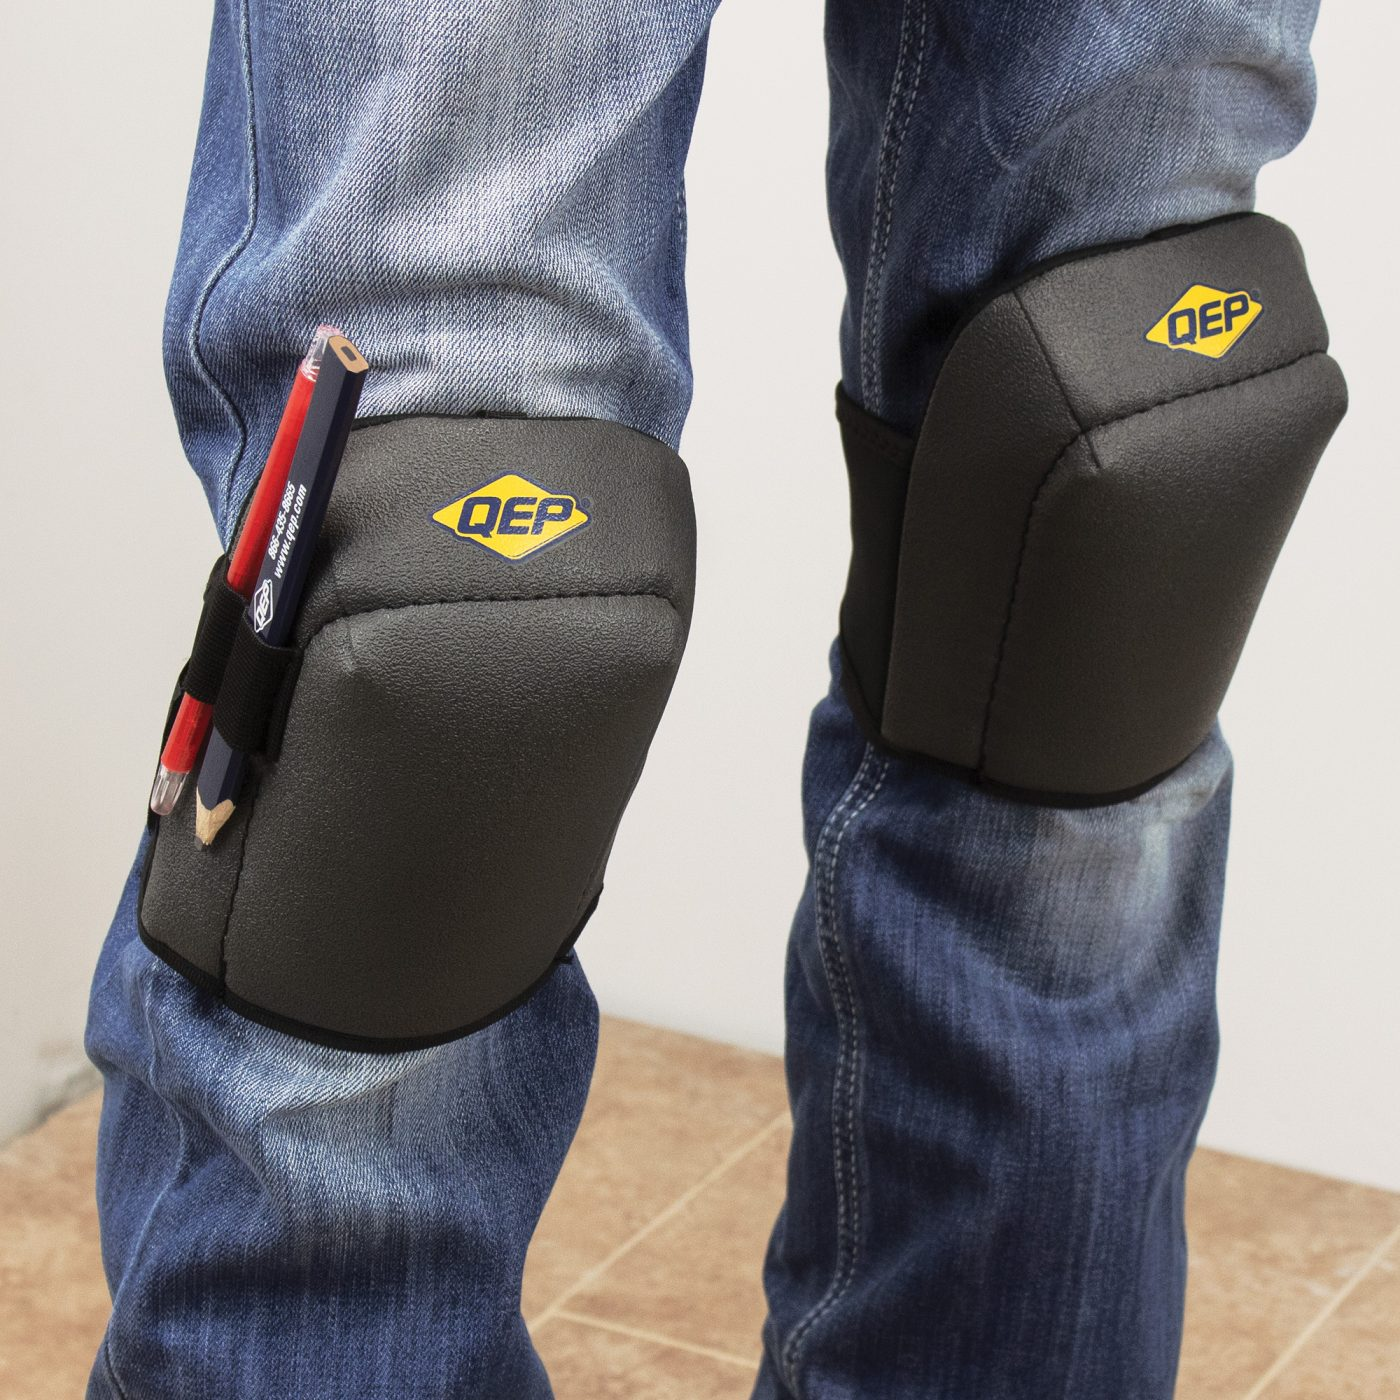 Comfort Grip Knee Pads